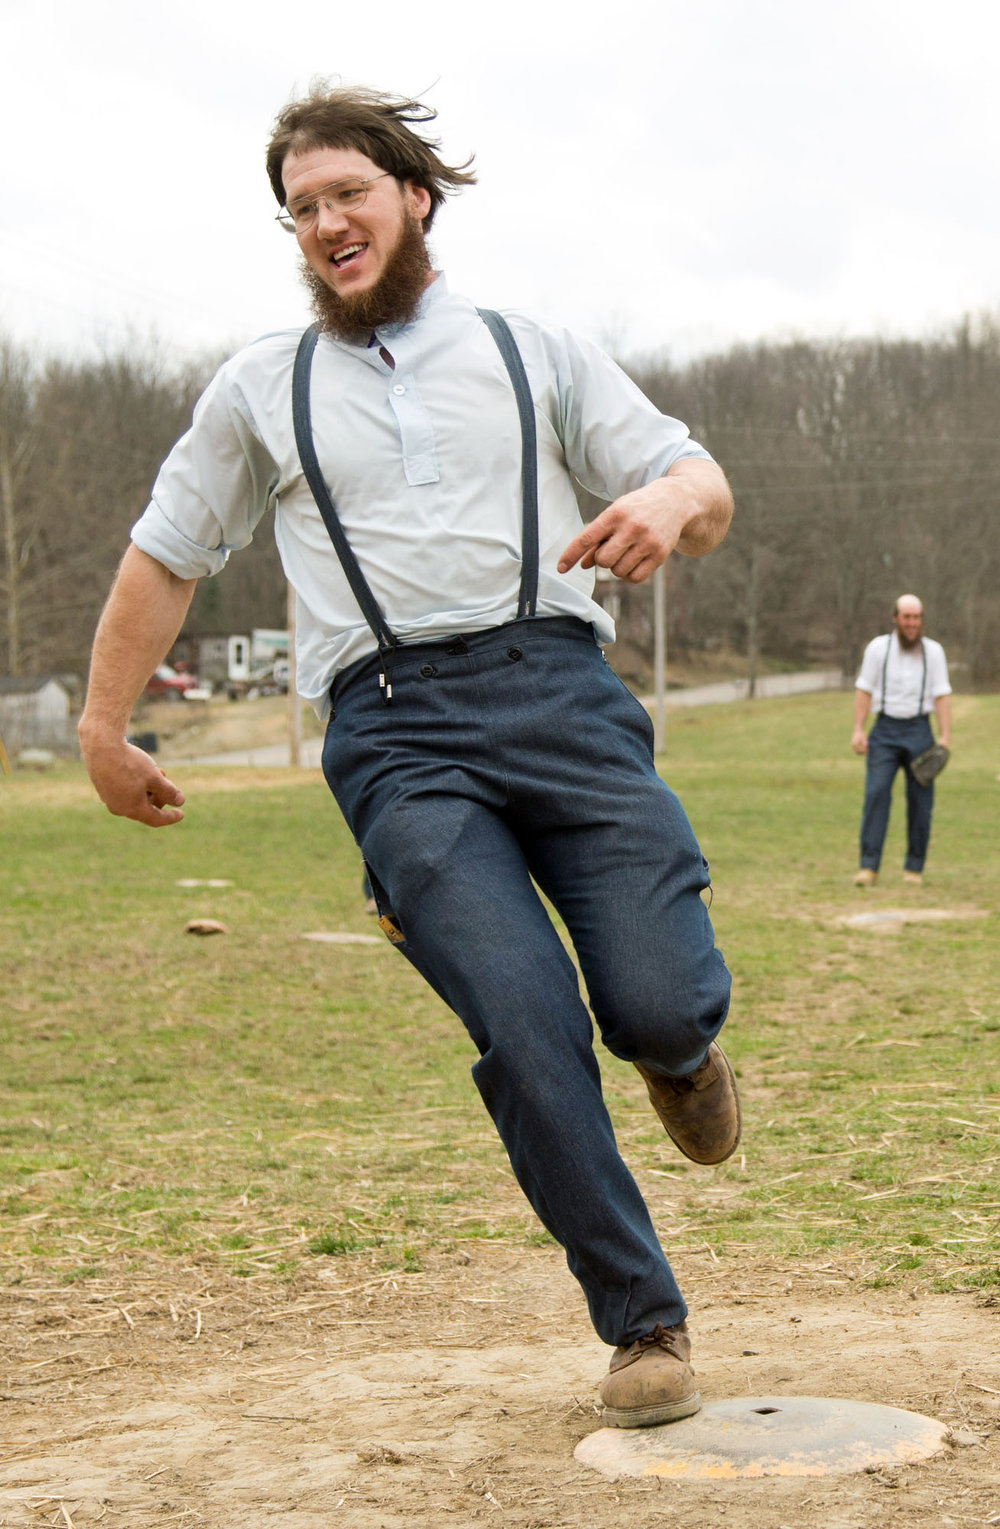 . Freeman Burkholder crosses home plate during a game of baseball at the farewell picnic in Bergholz, Ohio on Tuesday, April 9, 2013.  Burkholder was sentenced to prison for his part in the hair and beard cutting scandal against other members of the Amish community. (AP Photo/Scott R. Galvin)